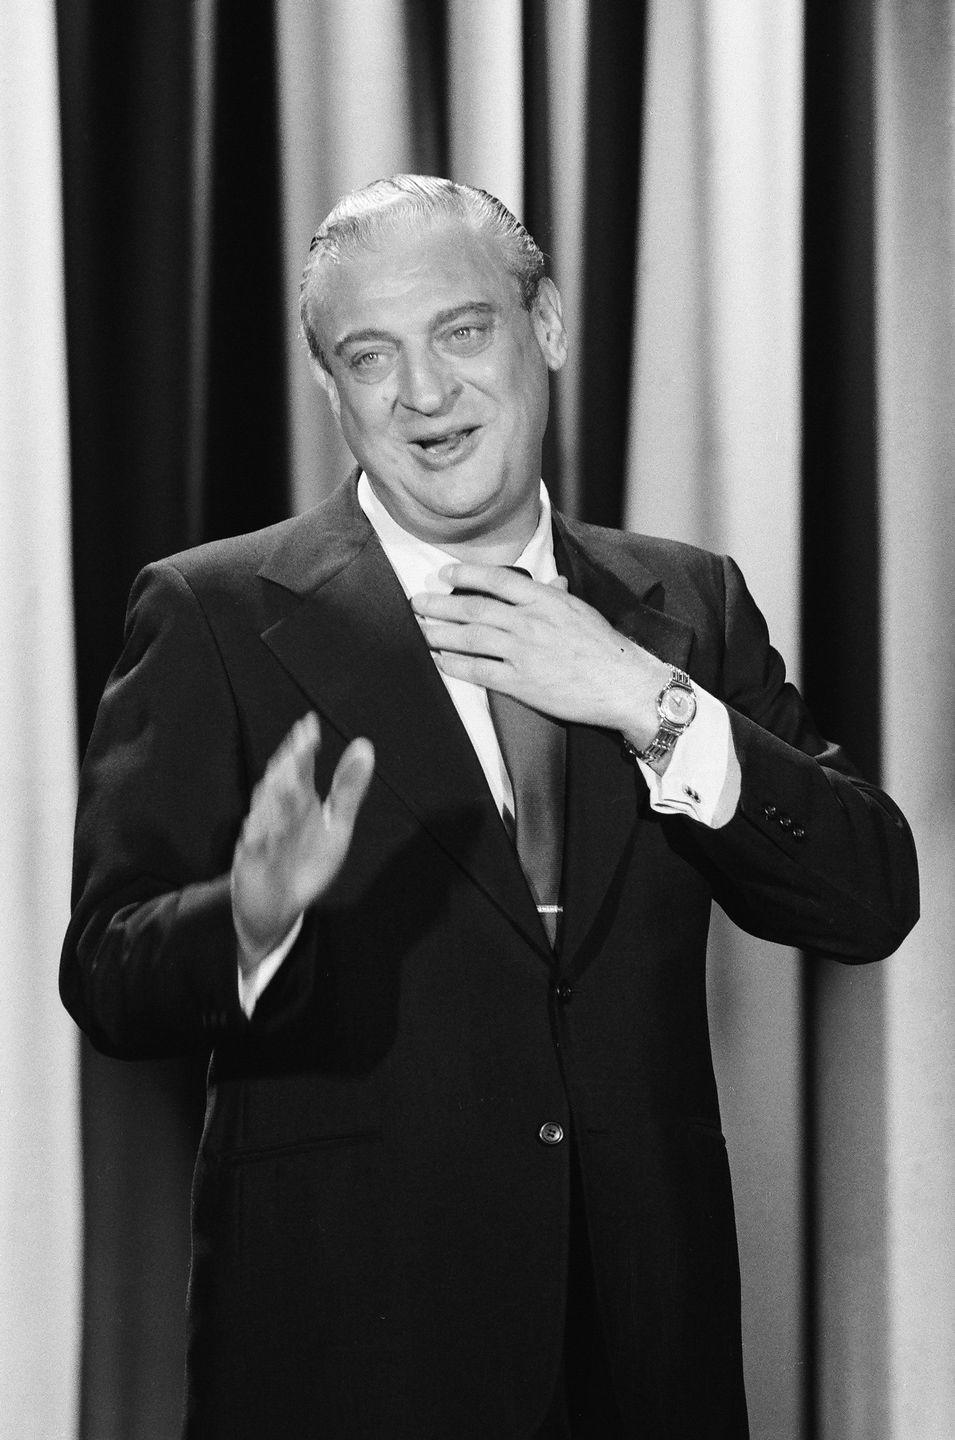 """<p>Rodney Dangerfield married his first wife, Joyce Indig, in 1949 at the start of his comedy career. He ended up temporarily quitting show business to provide for his family, opening up a paint company in New Jersey. """"I wanted marriage. I was always in love with love, the whole thing, the white house, green shutters, whatever,"""" Rodney told <a href=""""https://people.com/archive/those-hips-those-eyes-vol-26-no-4/"""" rel=""""nofollow noopener"""" target=""""_blank"""" data-ylk=""""slk:People"""" class=""""link rapid-noclick-resp""""><em>People</em></a>. However, the couple divorced in 1962. Despite remarrying a year later, they called it quits for good with a second divorce in 1970. </p>"""